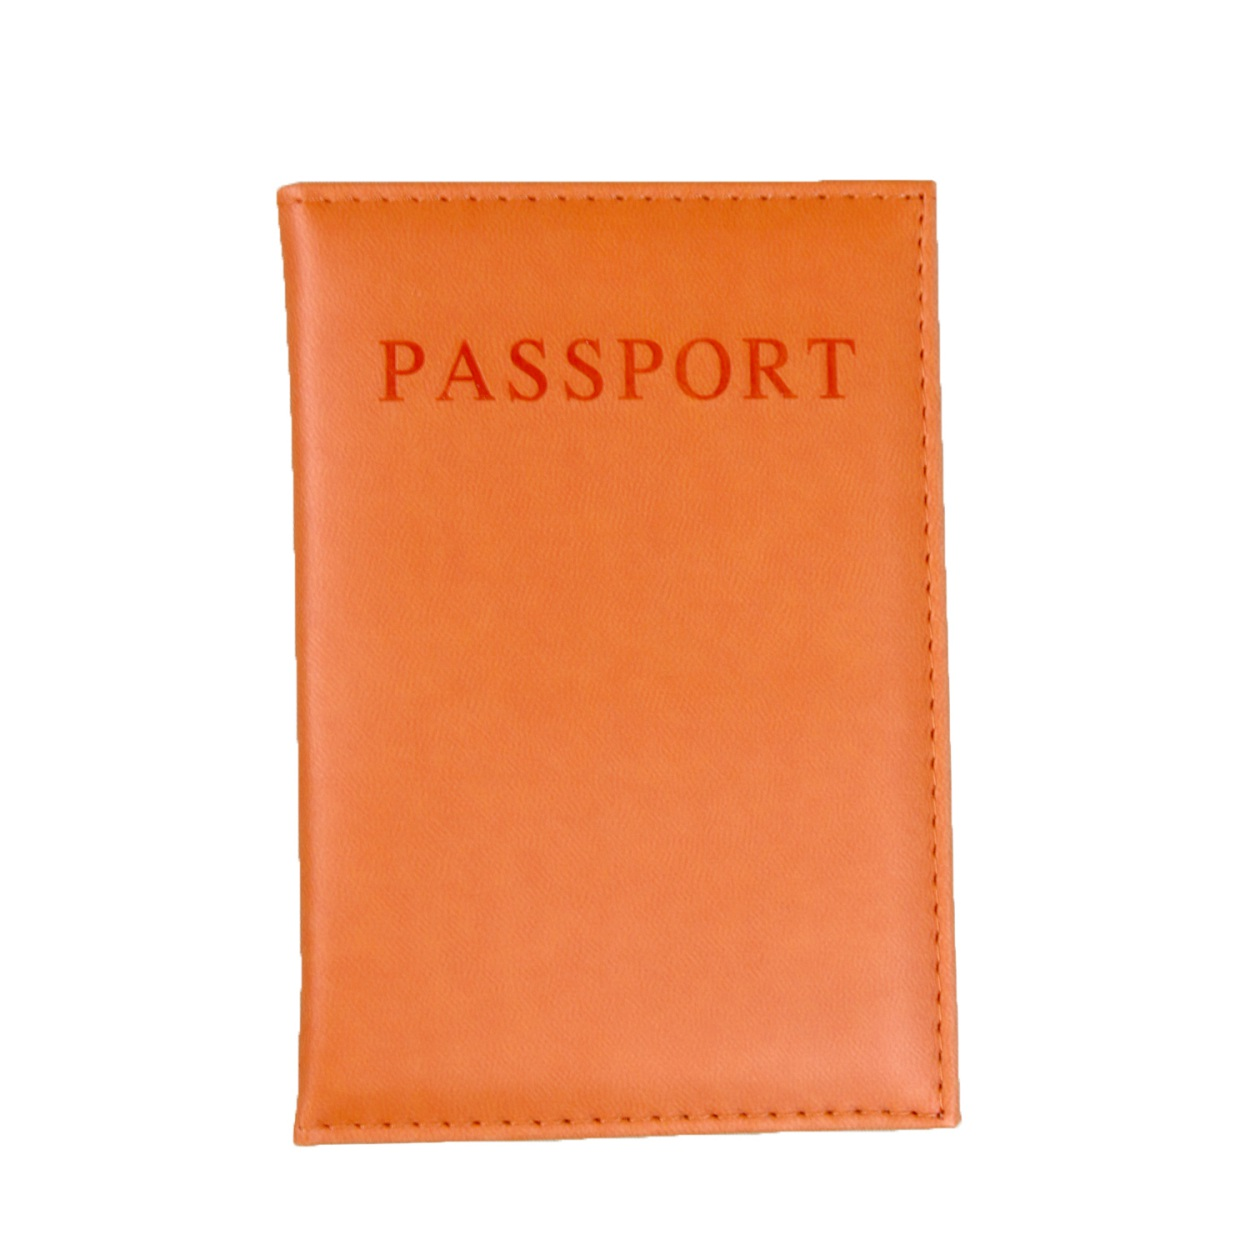 2018 New Men Business Passport Cover ID Credit Card Holder Fashion PU Card Holder Women Travel Passport Holder Passport Wallet joyir men passport cover genuine leather passport holder travel wallet card wallet credit card holder porte carte business male